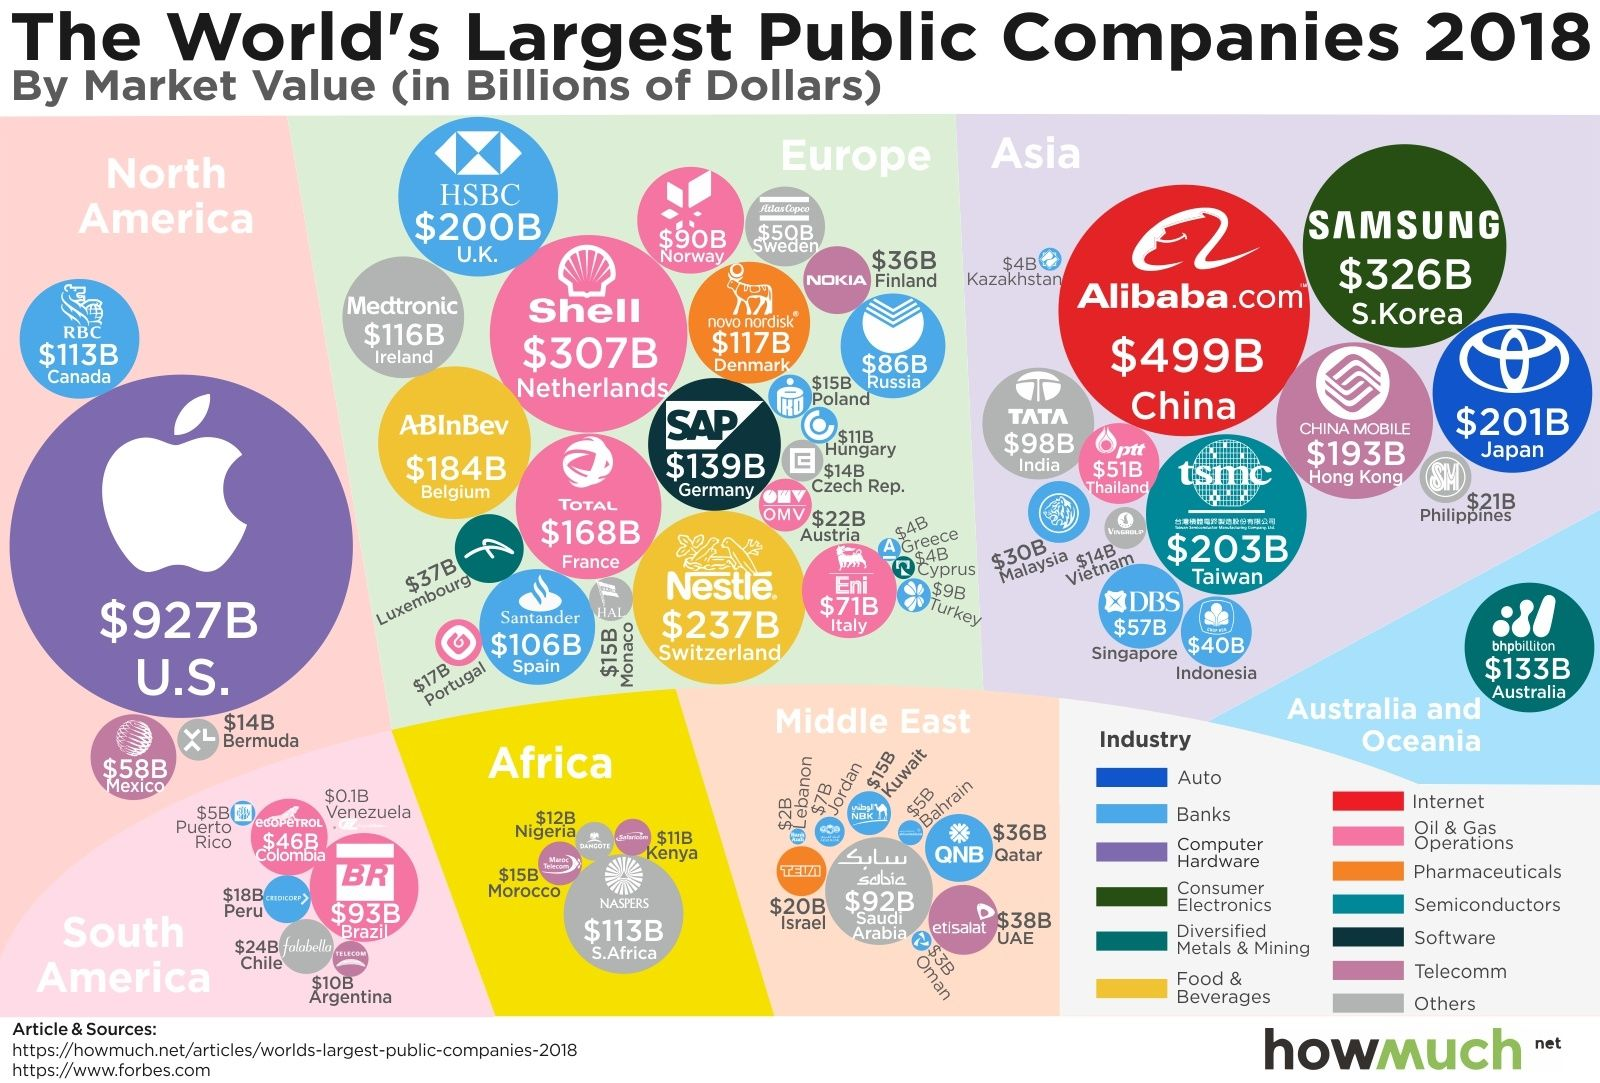 How Big Is Apple Compared To The Largest Companies Of Each